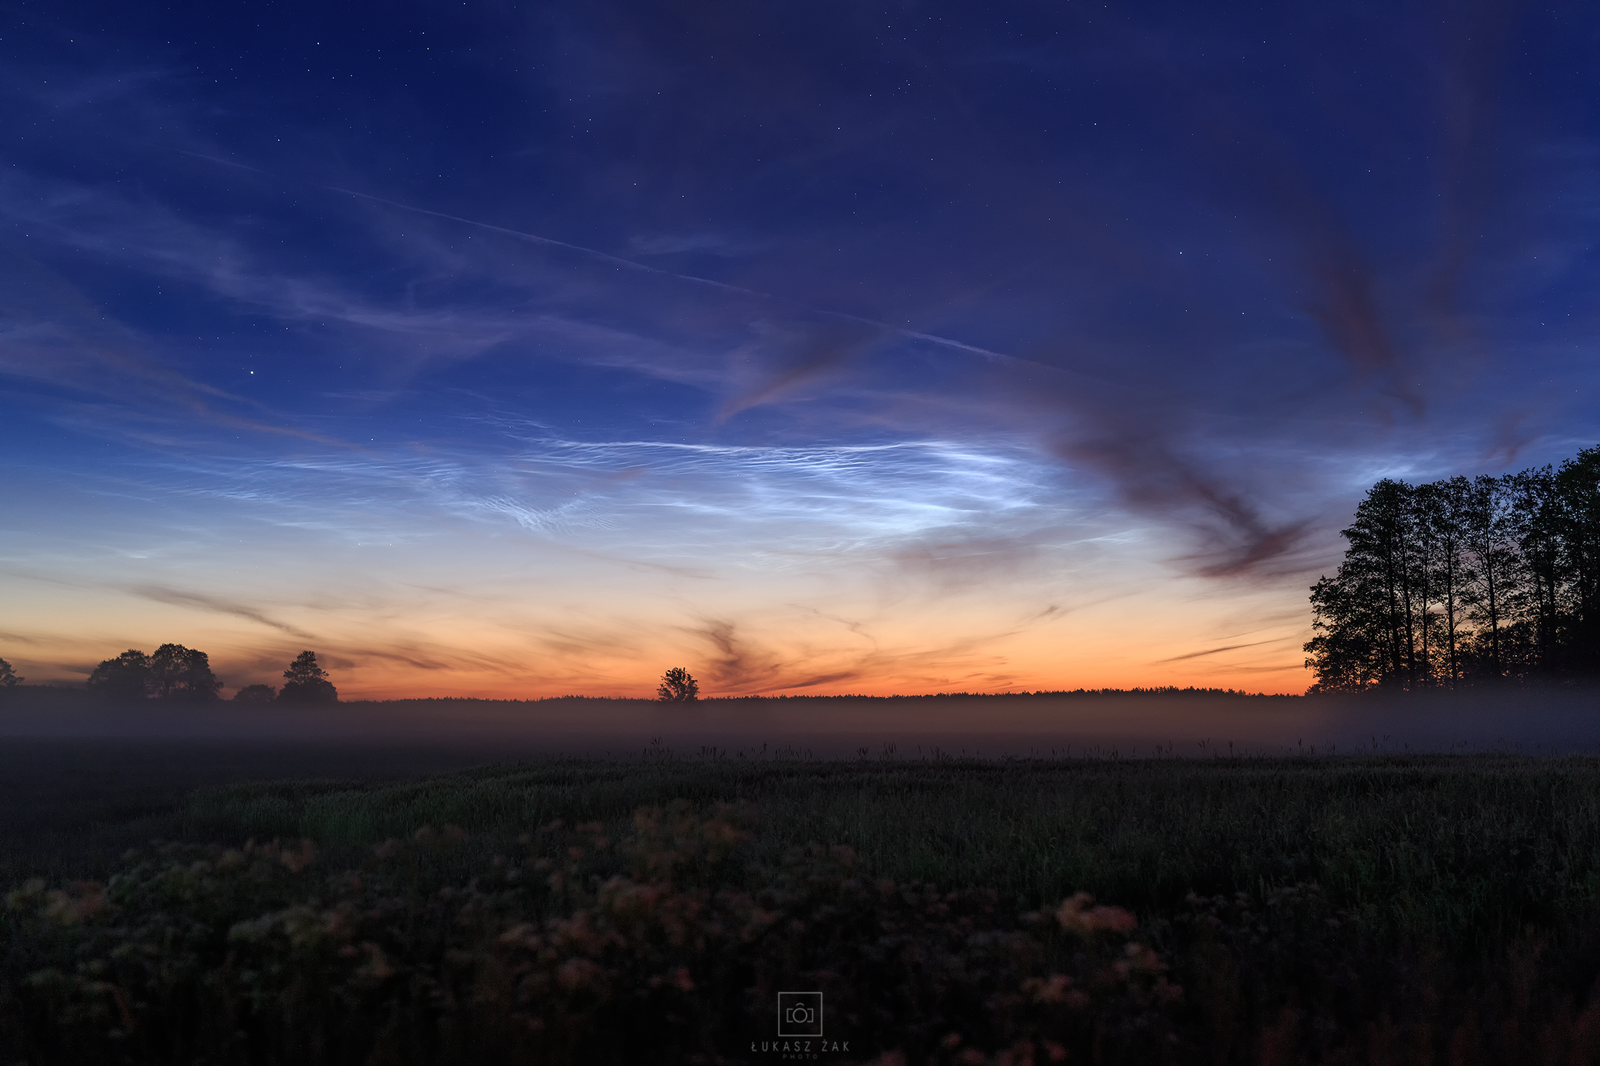 NLC_03_05_2019.png